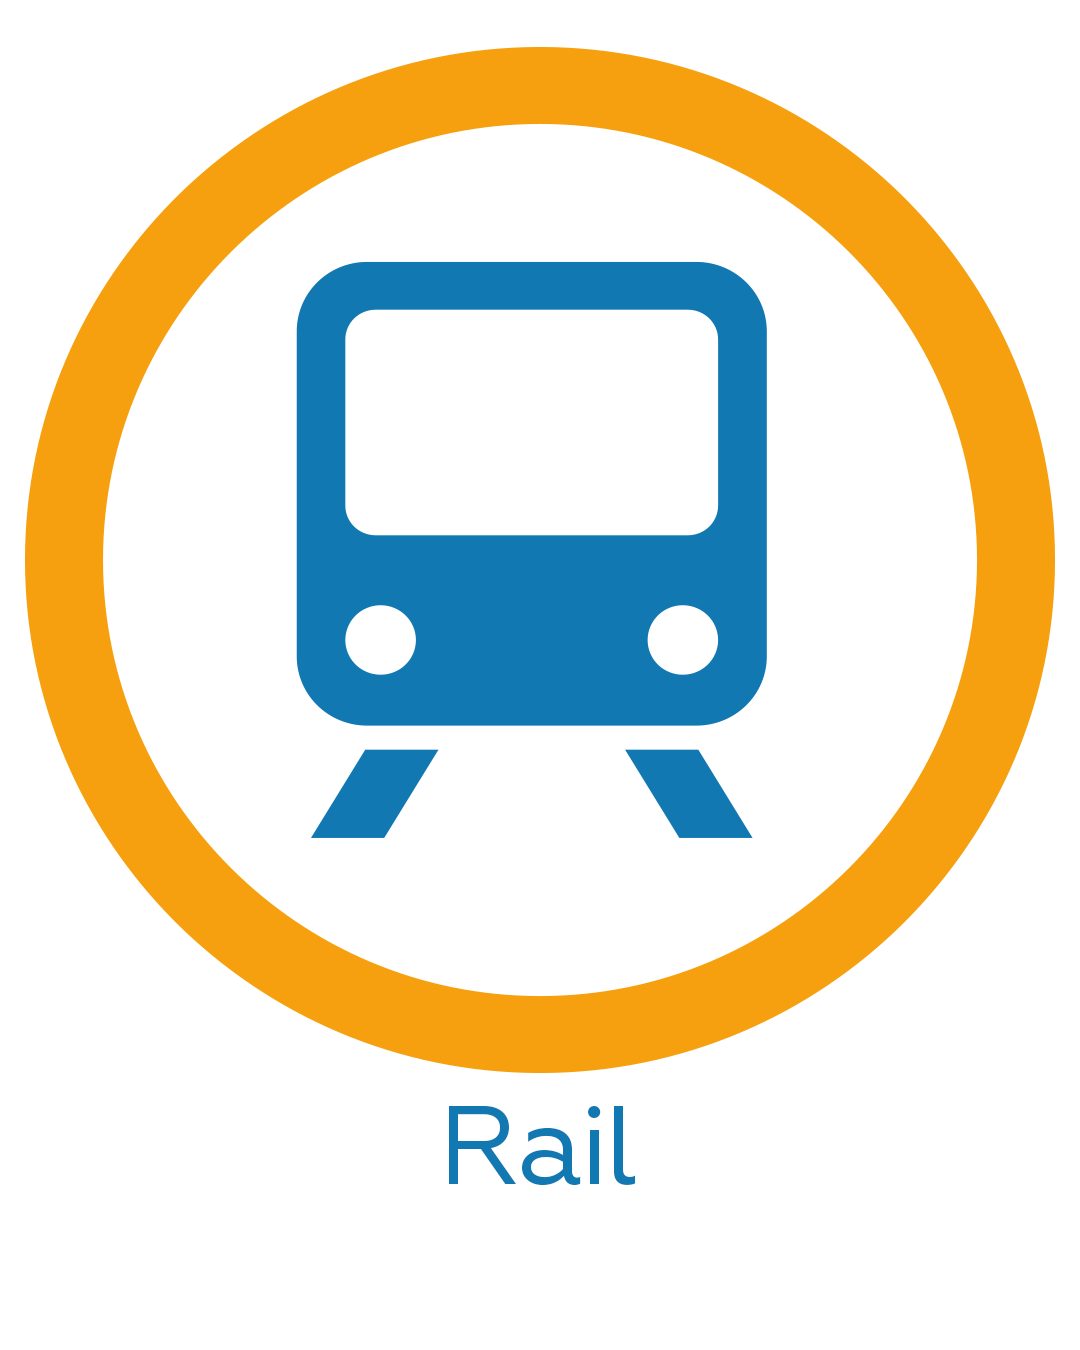 Hire rail engineers